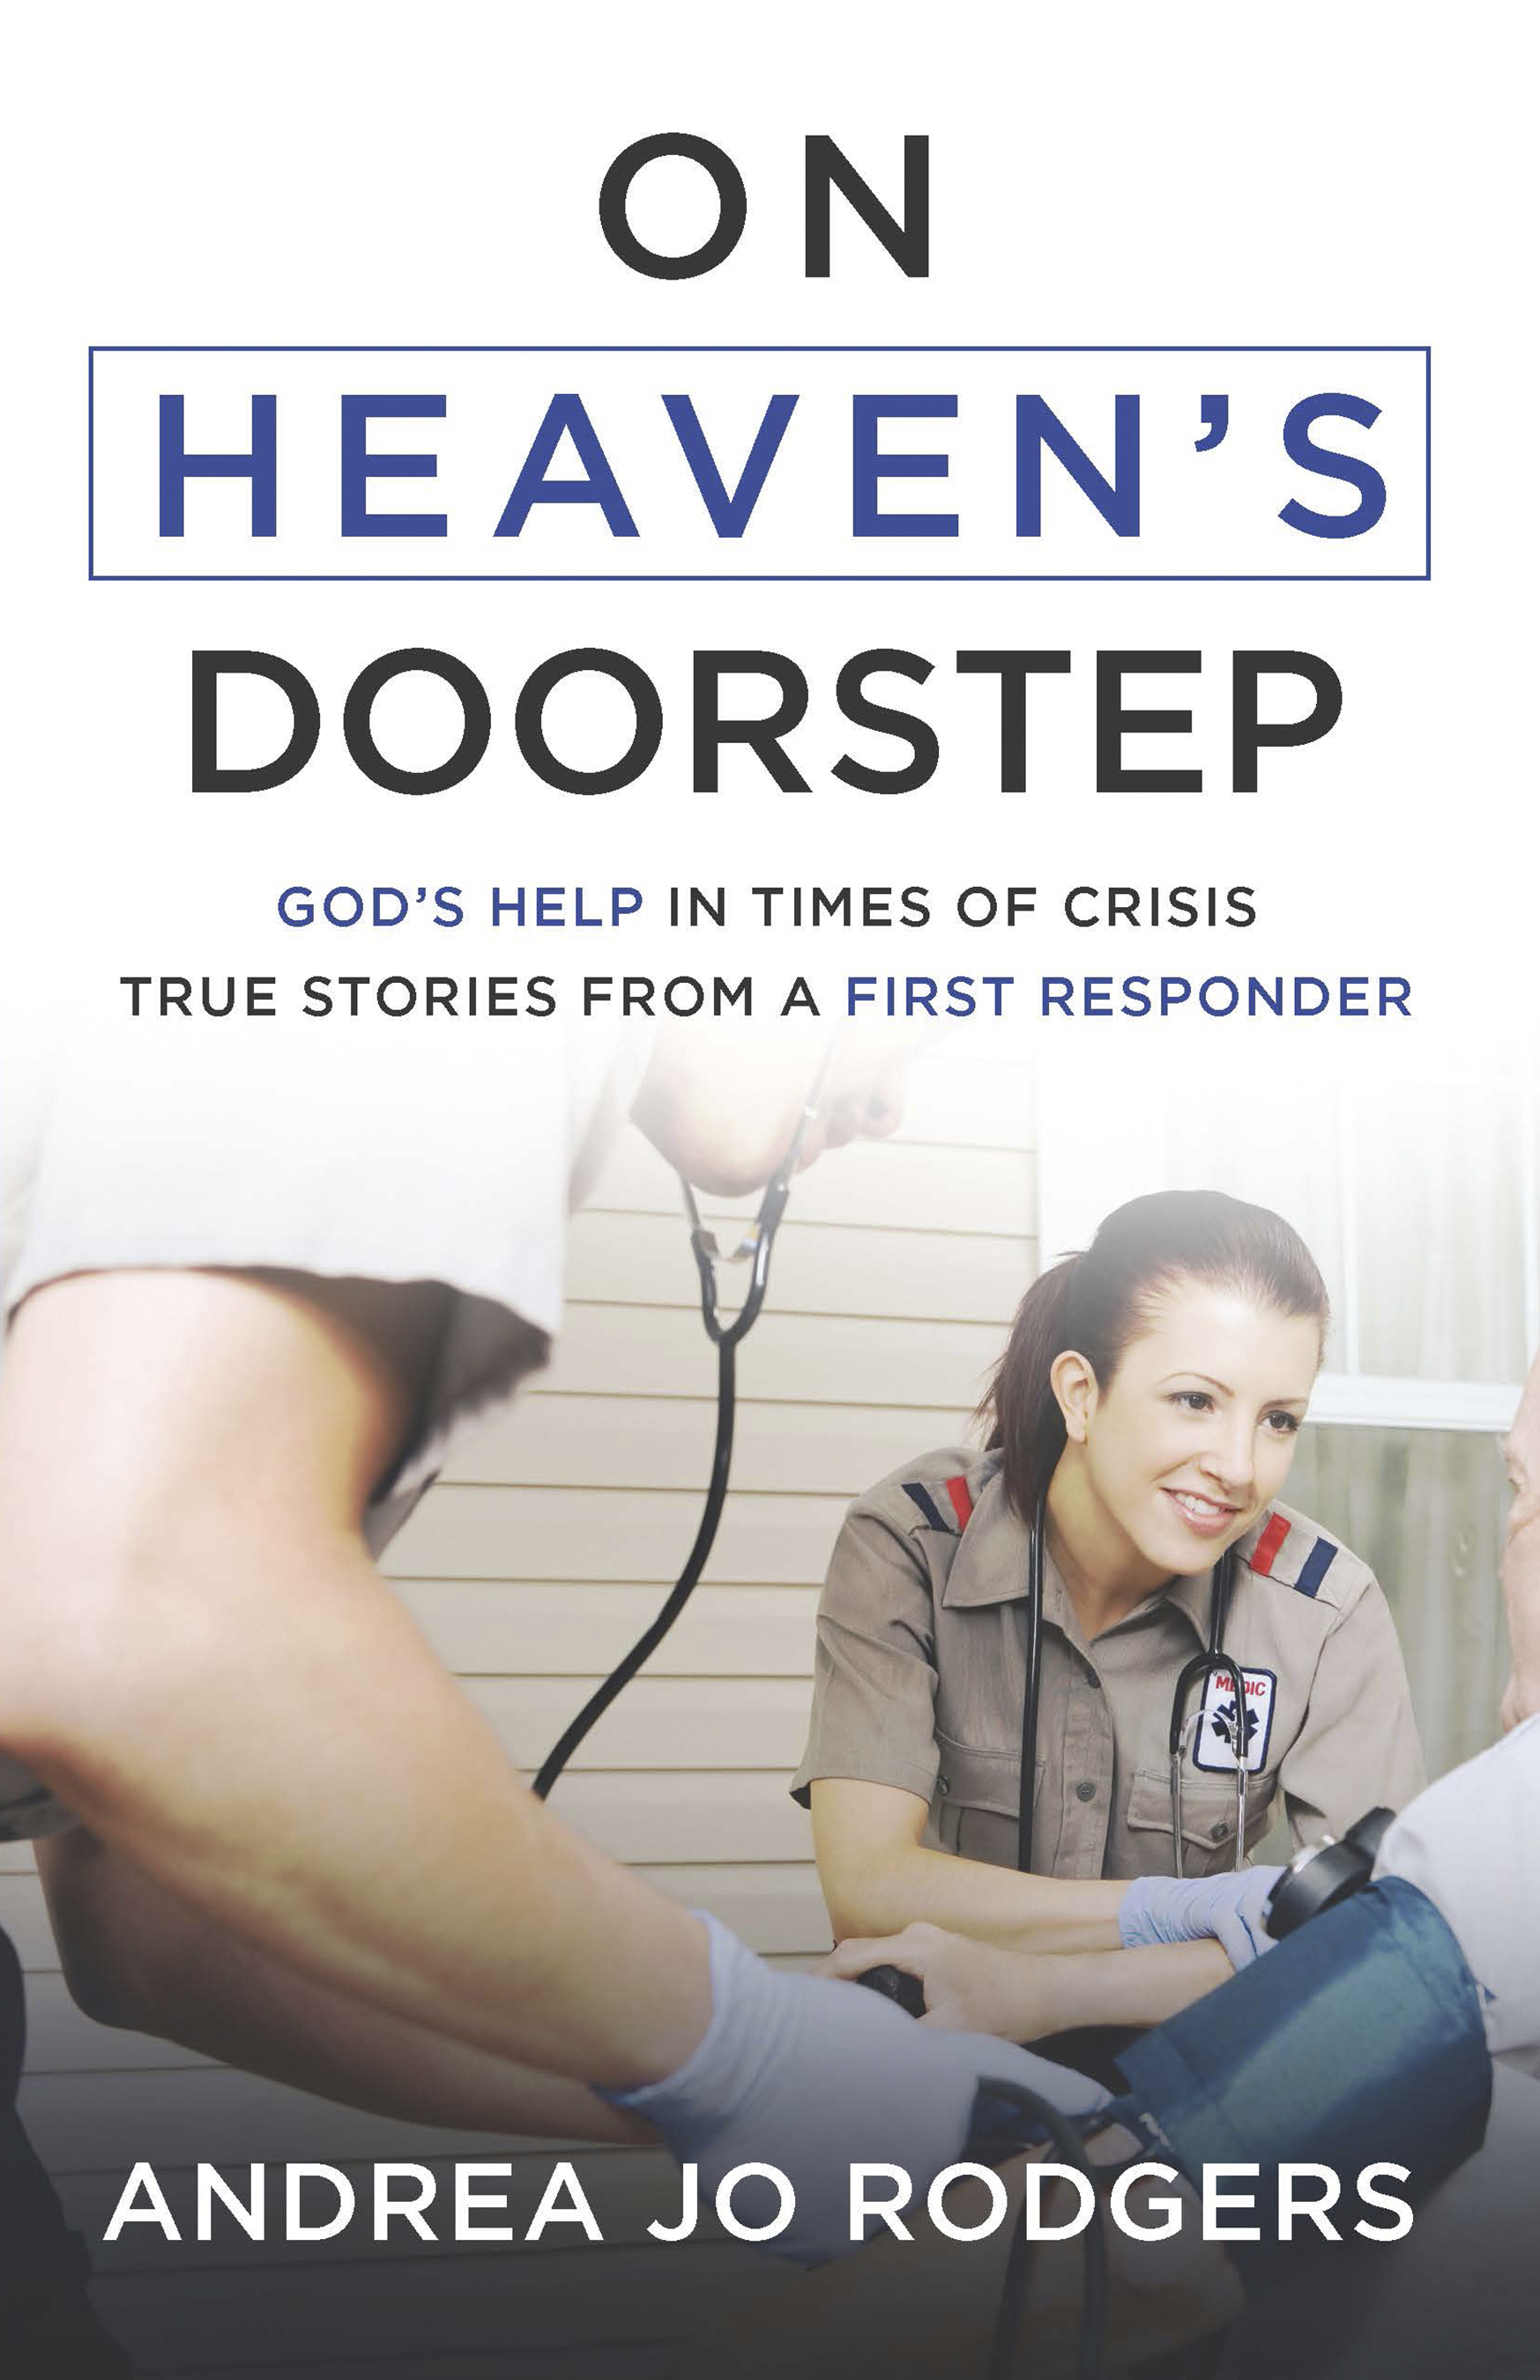 Read More In On Heavens Doorstep By Andrea Jo Rodgers